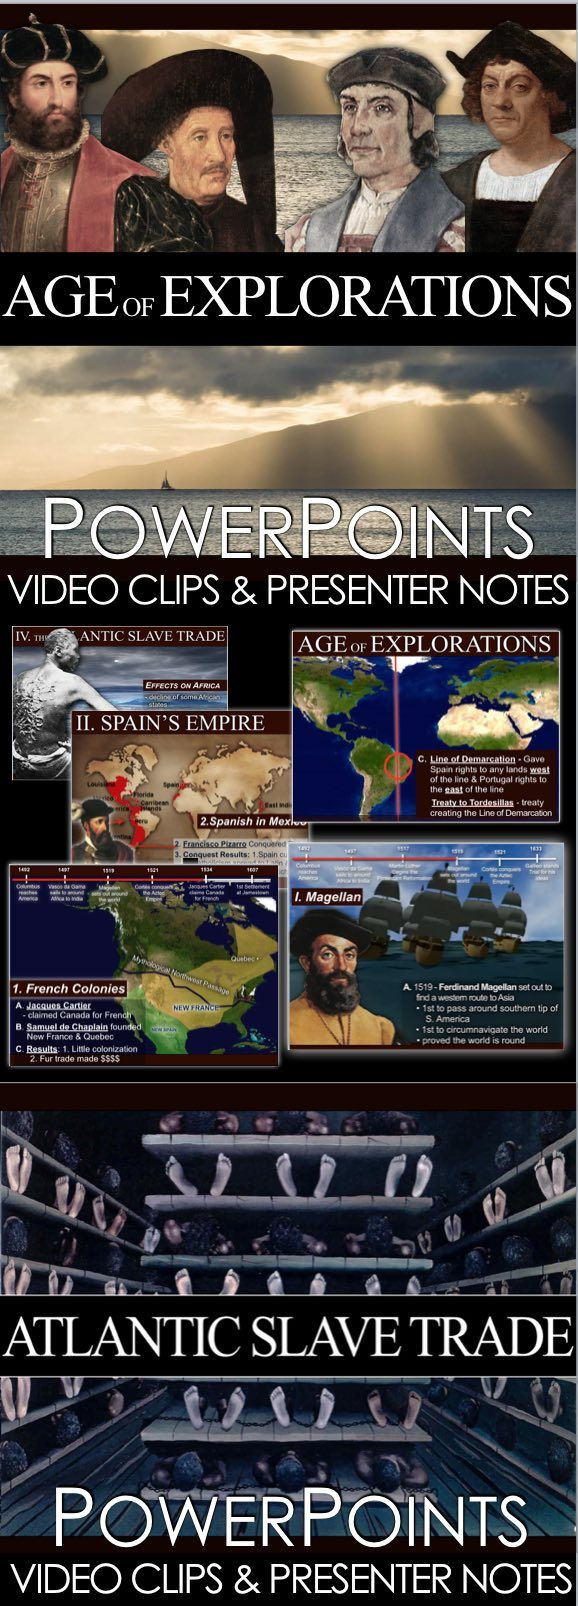 Age of Explorations and Colonization PowerPoint with Video Clips and Presenter Notes covers the period from the early 15th century and continuing into the early 17th century, during which European ships were traveled around the world to search for new trading routes with the East. Age of Explorations PowerPoint is packed with maps, primary source documents, stunning visuals, and embedded video links, everything you need to keep your students engaged.